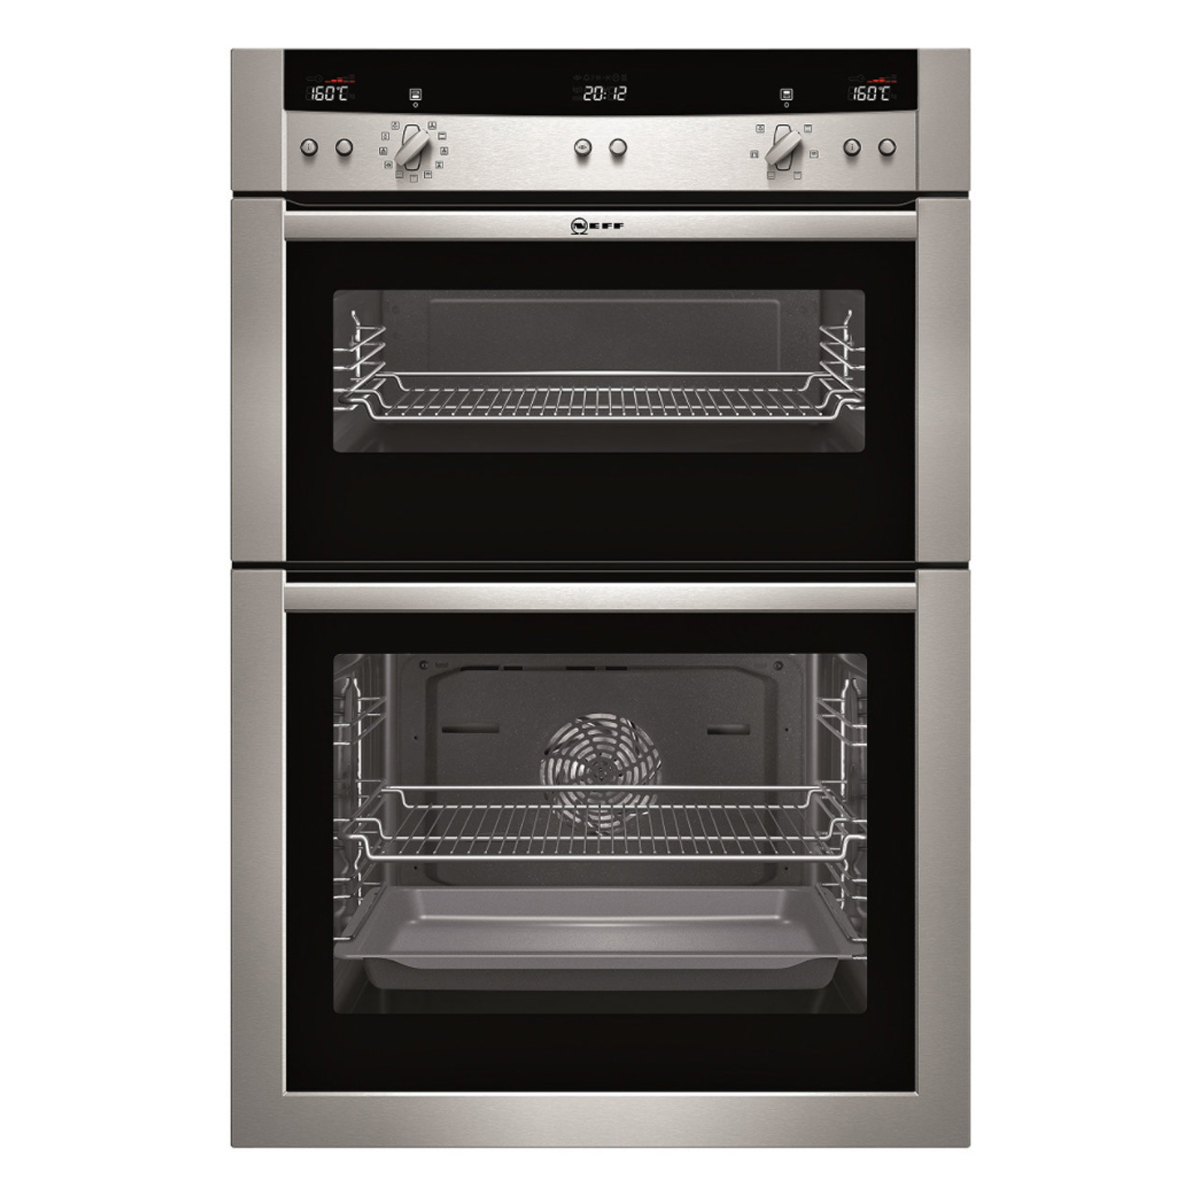 Neff U15E42N3AU 600mm/60cm Electric Wall Oven 45703